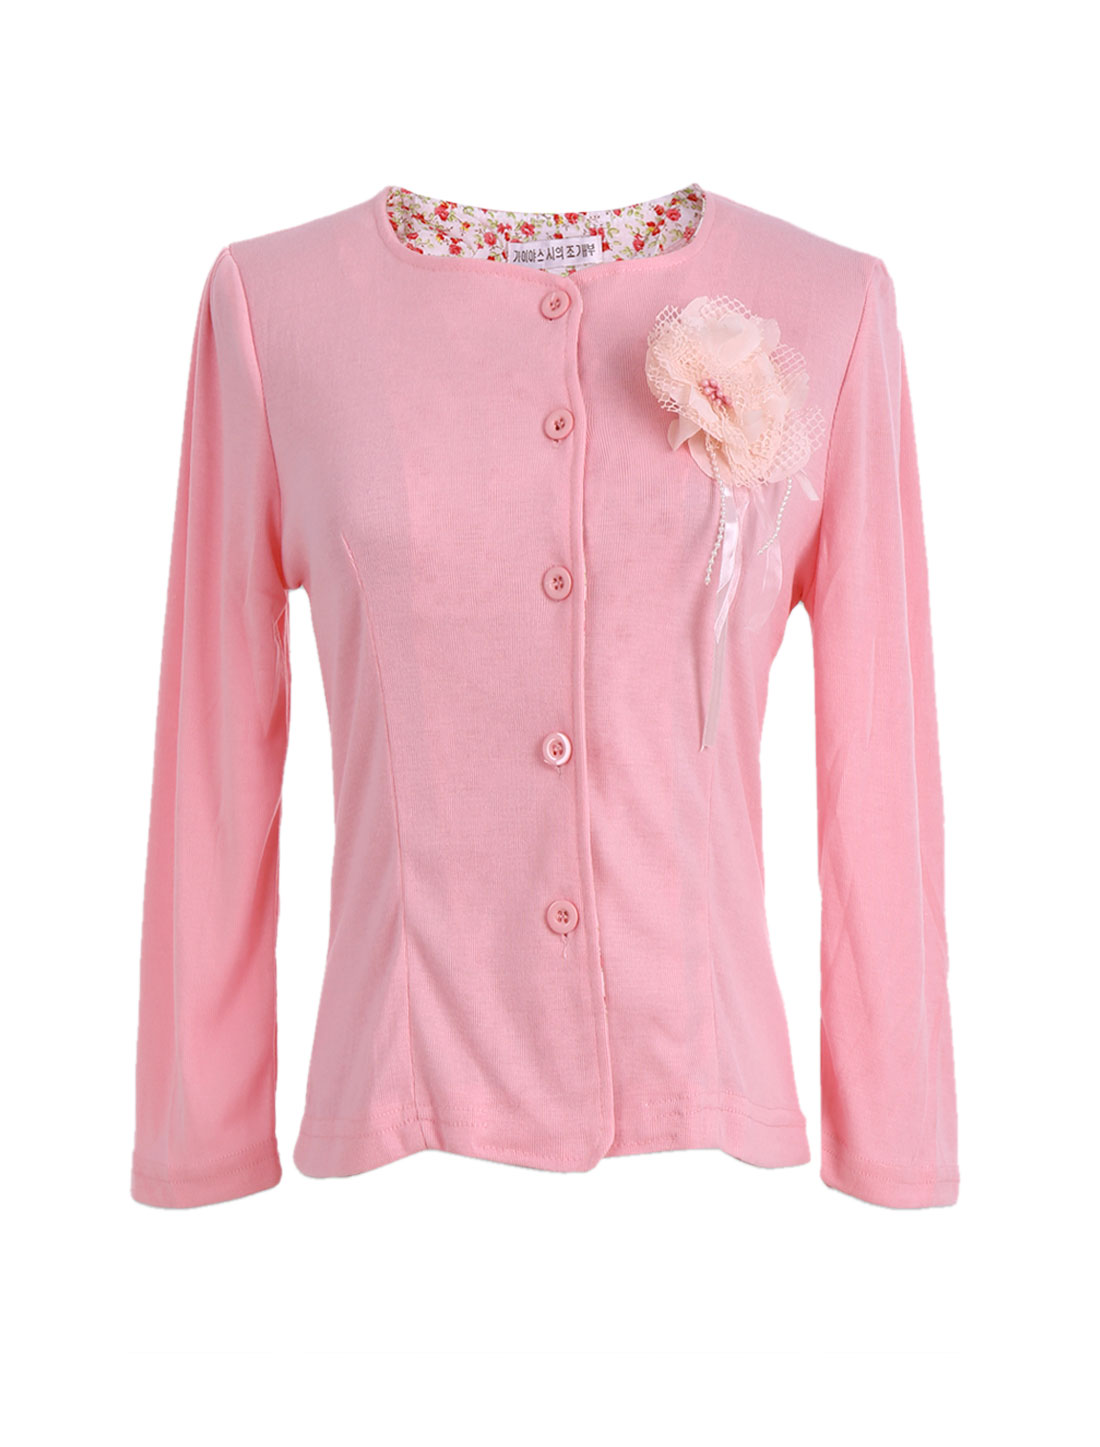 Ladies 3 /4 Sleeves Button Front Open Cardigan Sweater Top Pink XS